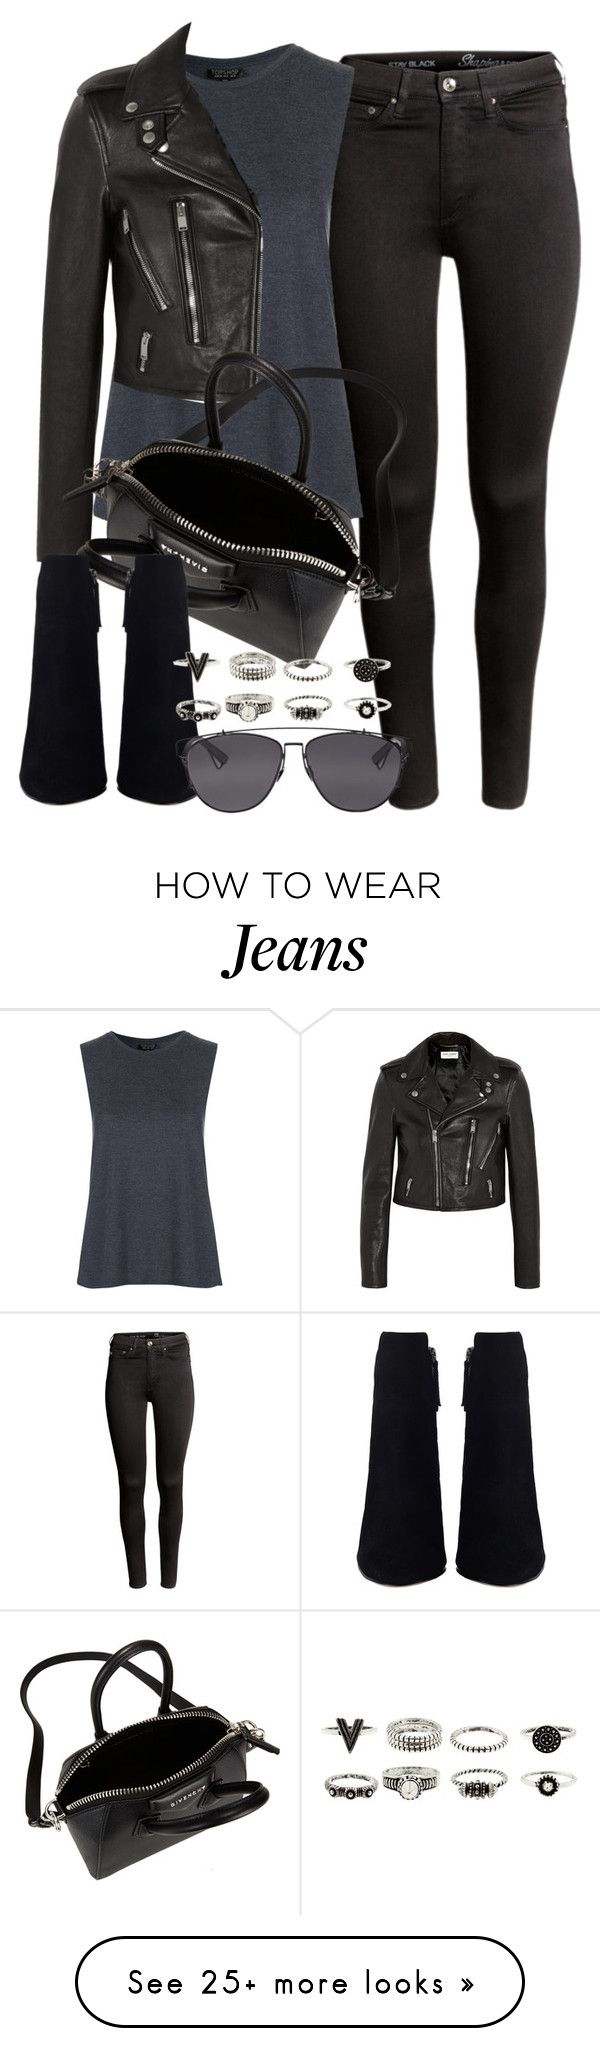 """""""Style #9442"""" by vany-alvarado on Polyvore featuring H&M, Topshop, Yves Saint Laurent, Givenchy and Christian Dior"""